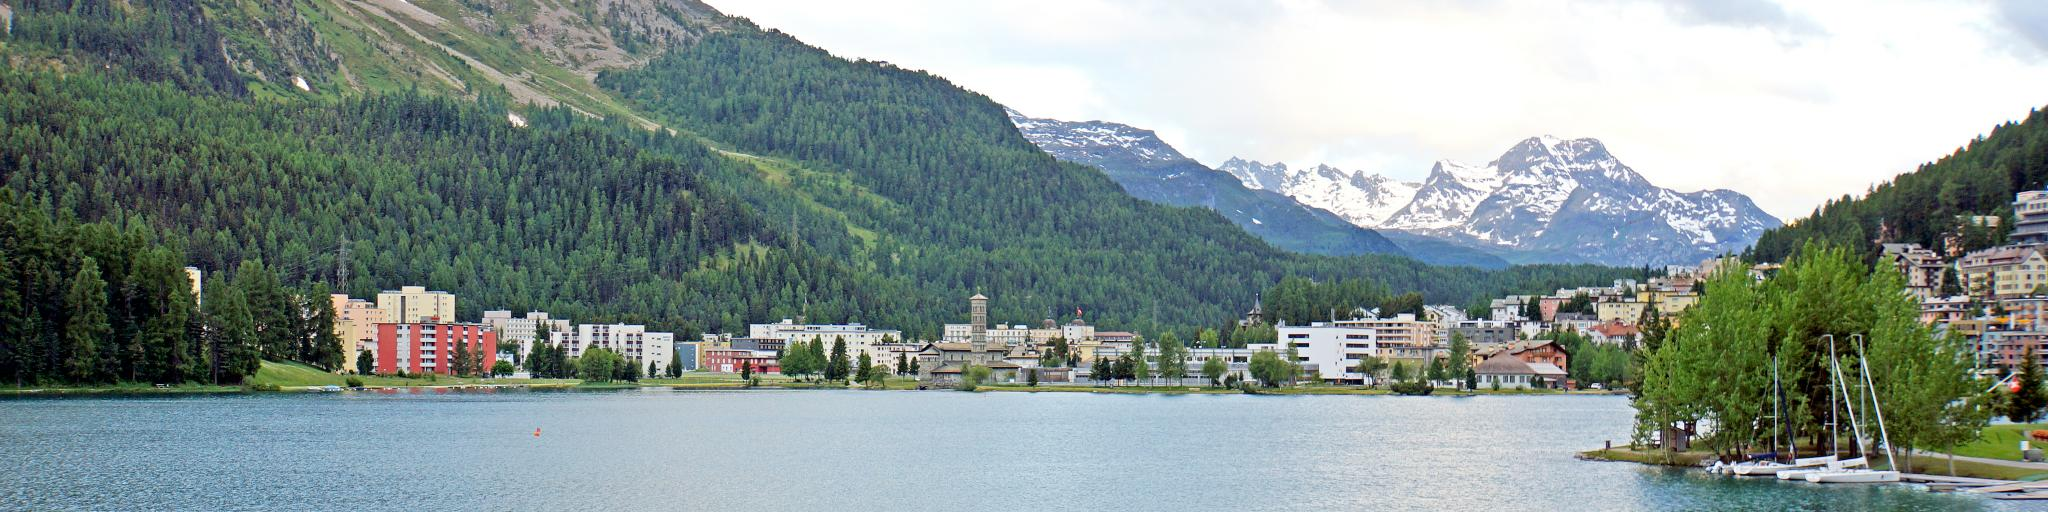 A view of Lake St Moritz, Switzerland, with the snow-capped Swiss Alps in the background